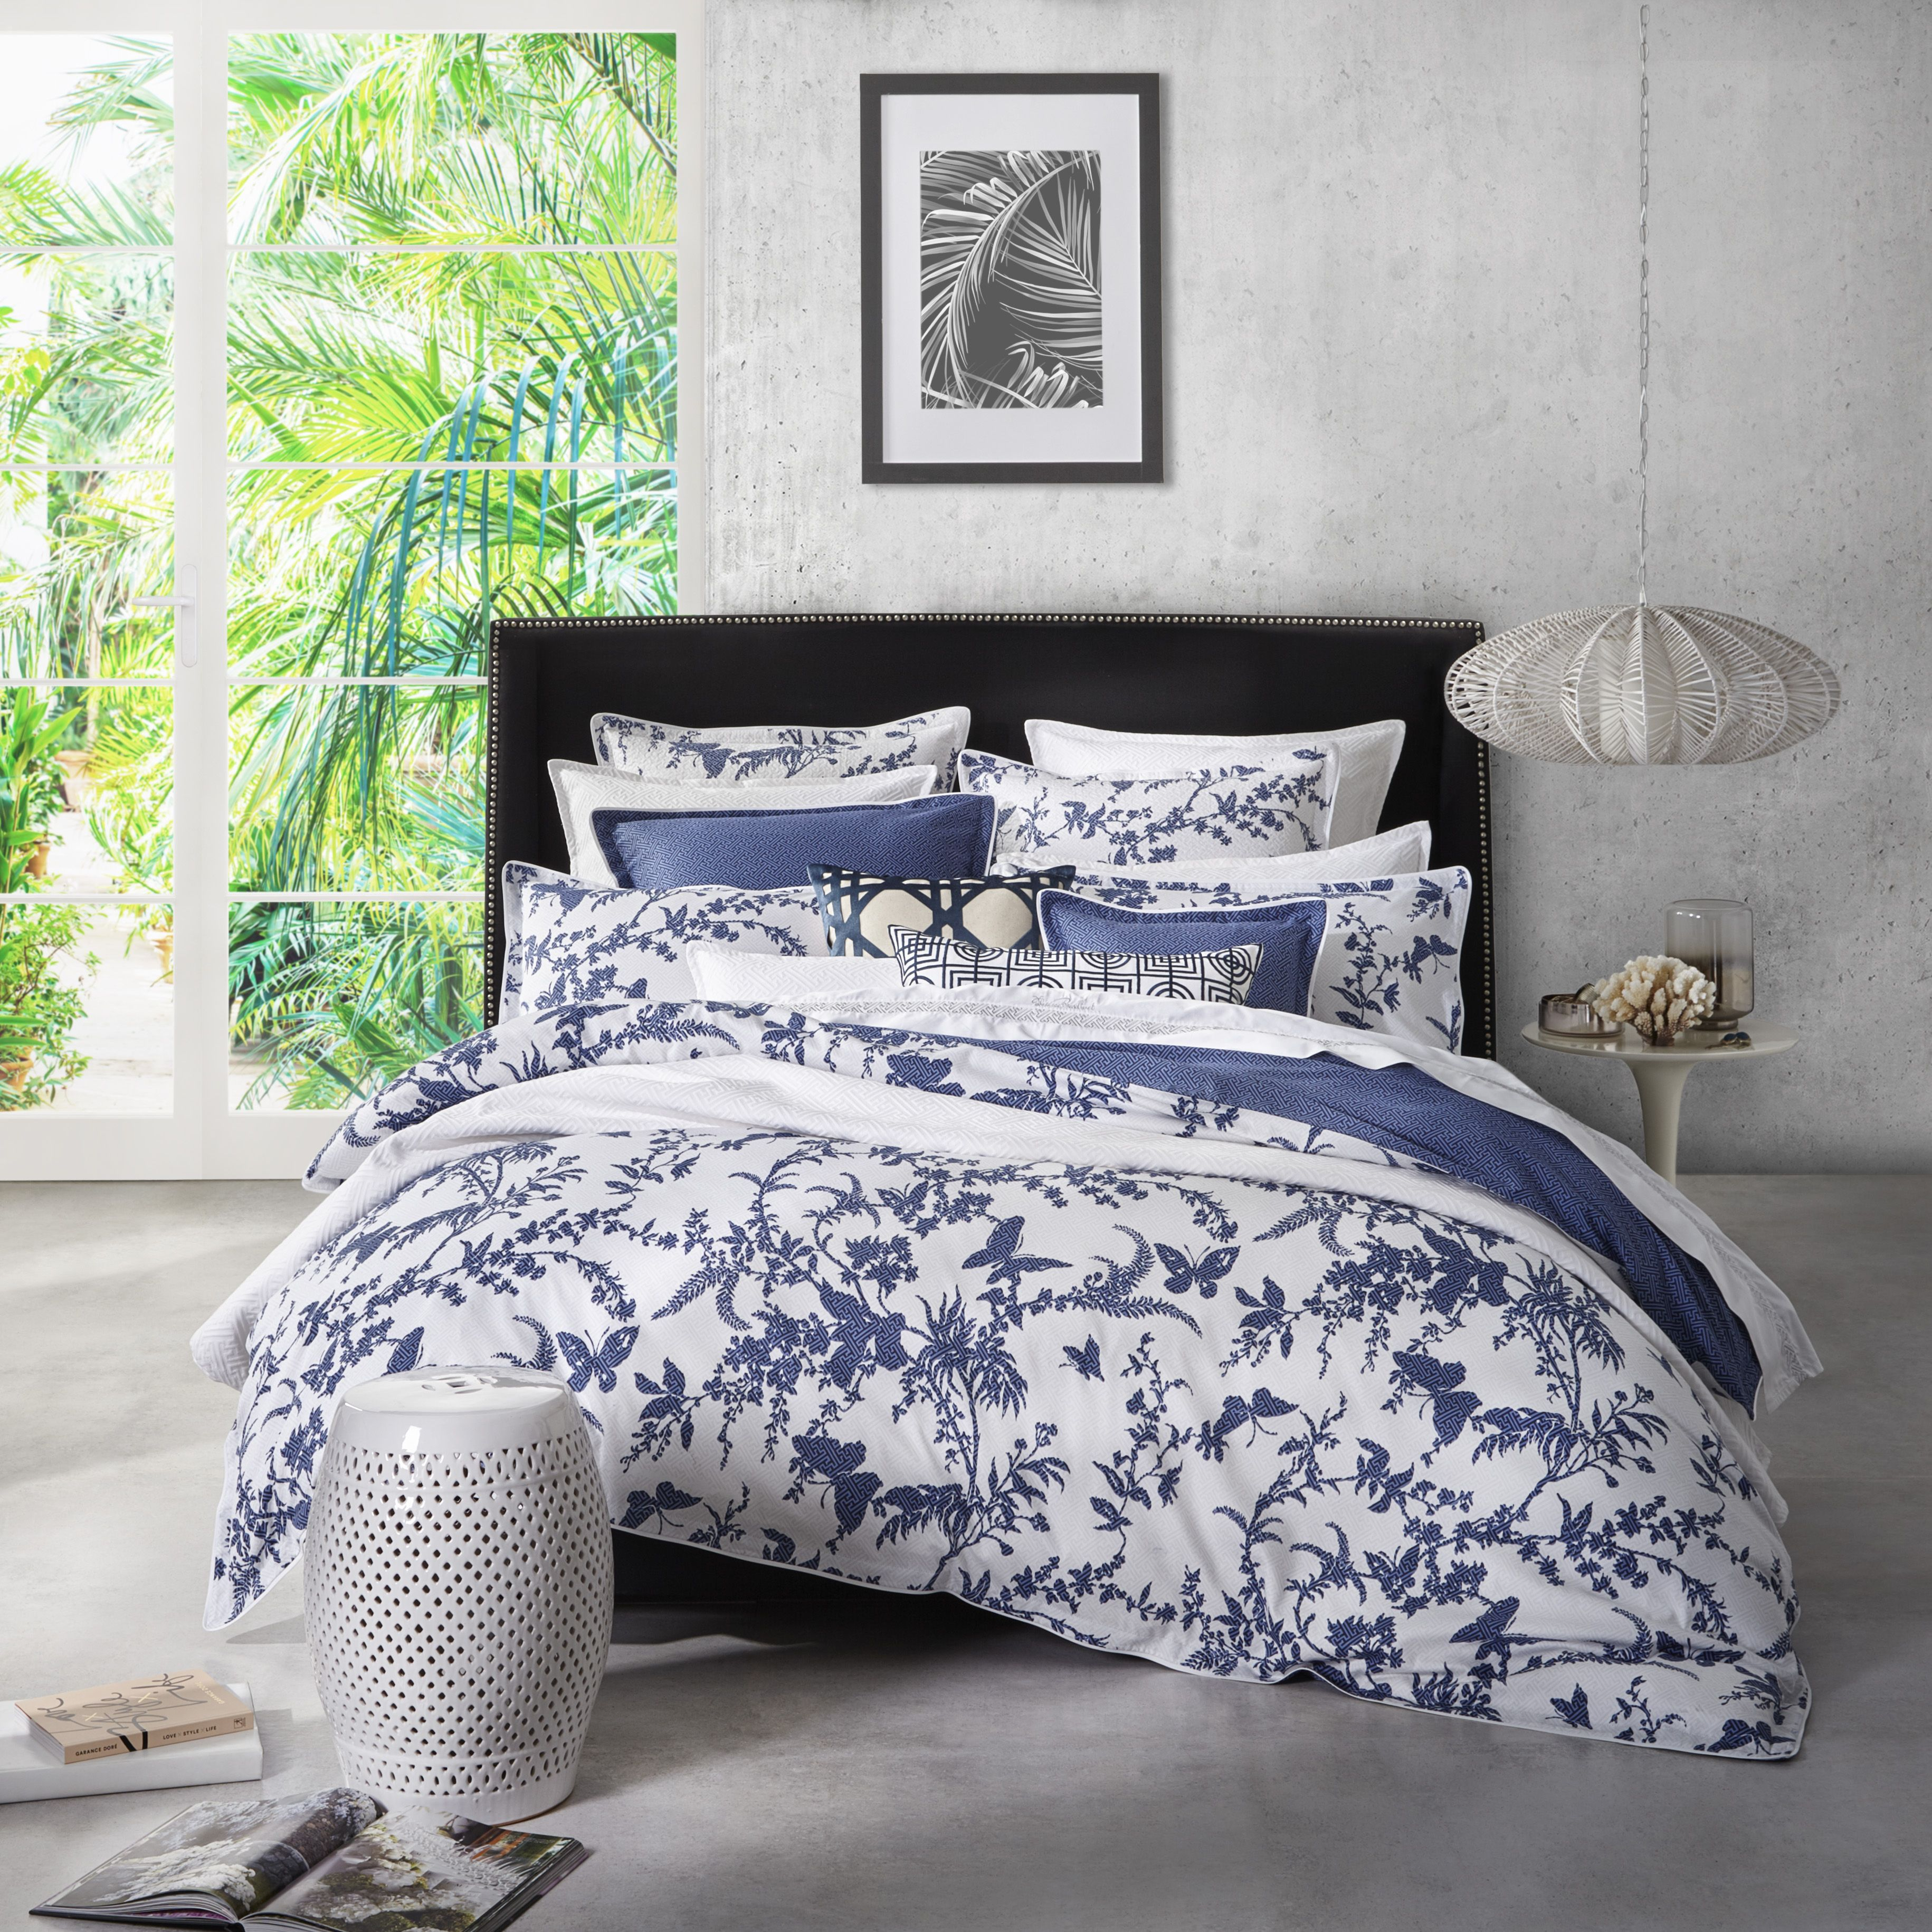 Florence Broadhurst  Tropical Navy Quilt Cover Set #Navy #Blue